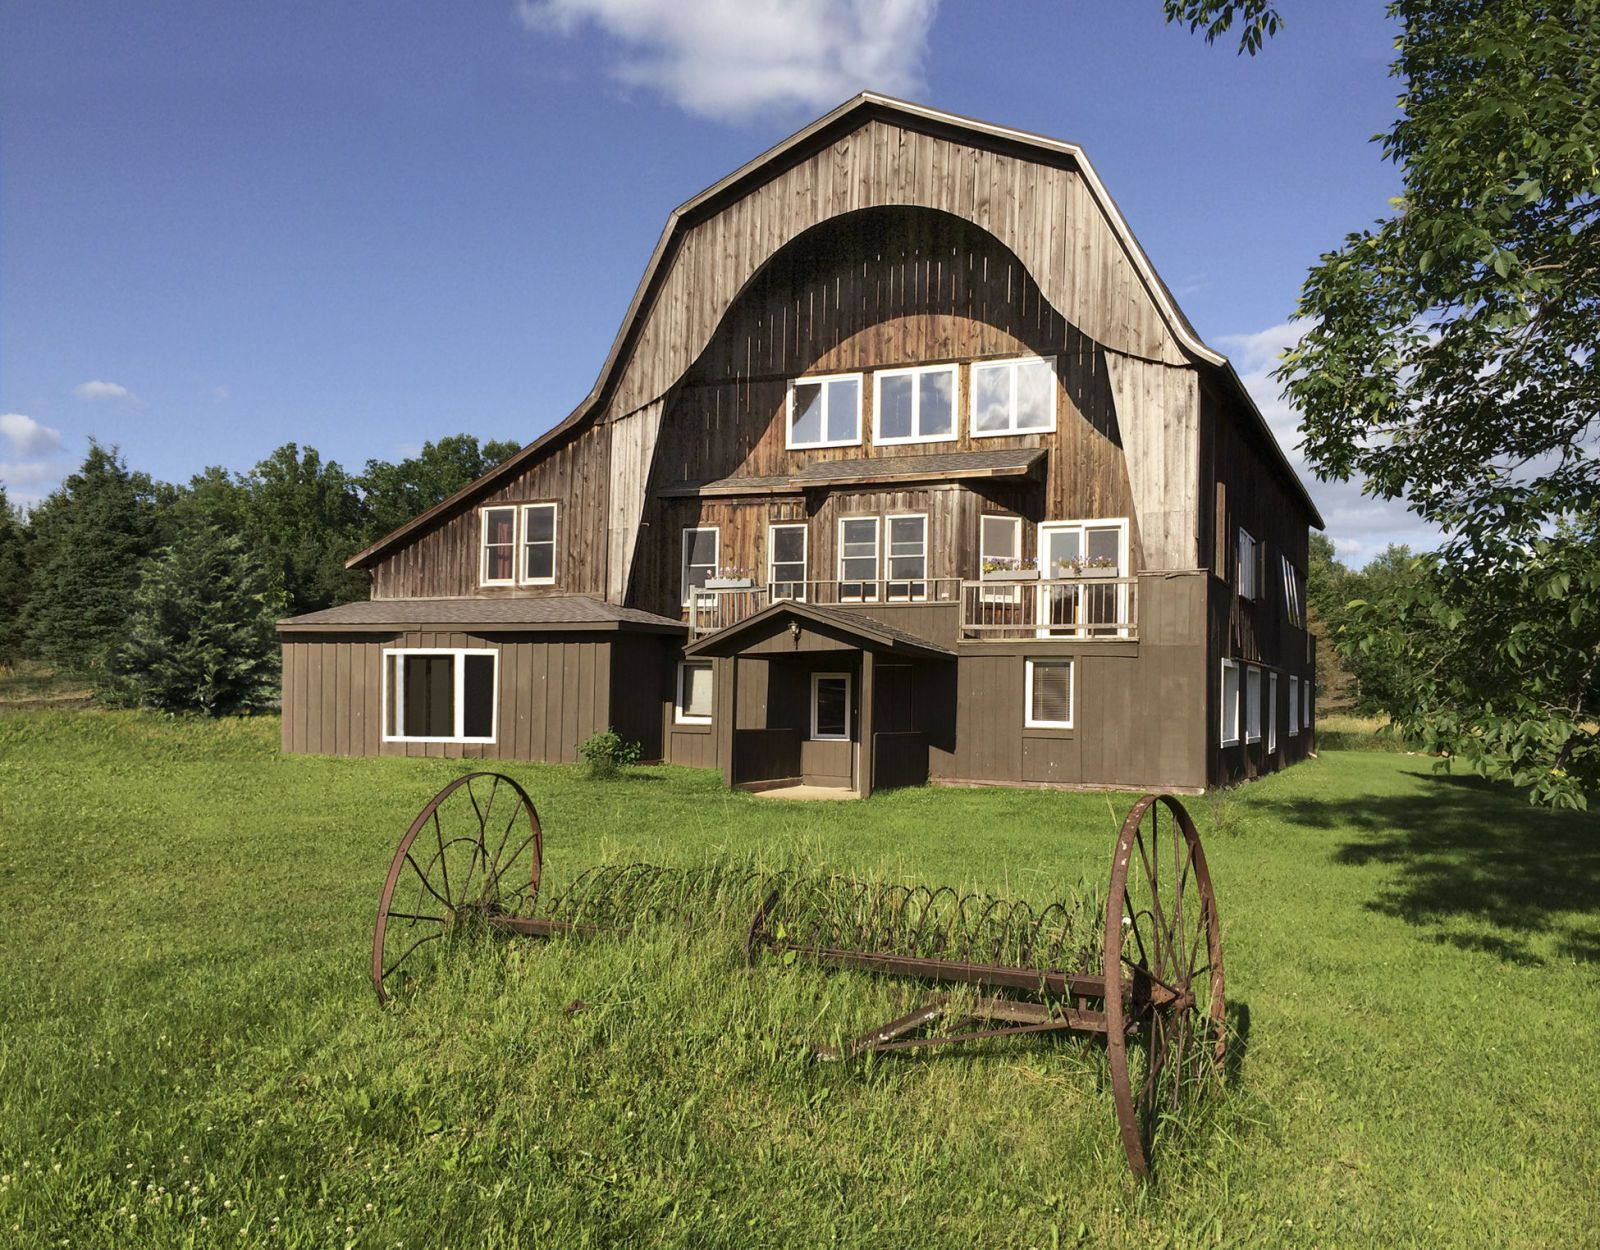 7 Of The Dreamiest Converted Barns We Ve Ever Laid Eyes On